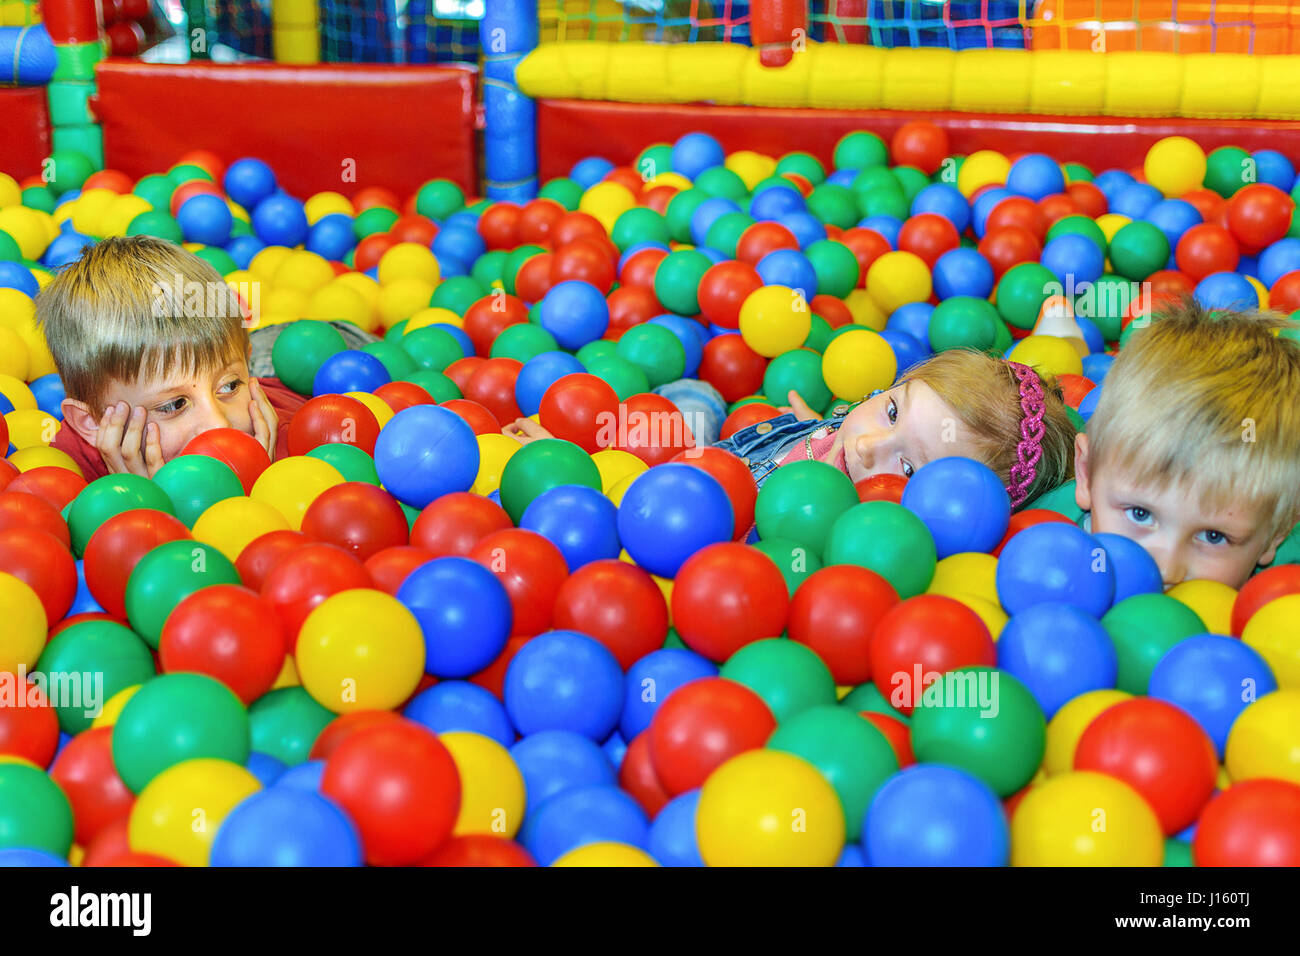 Children playing in a ball pool at the party. - Stock Image